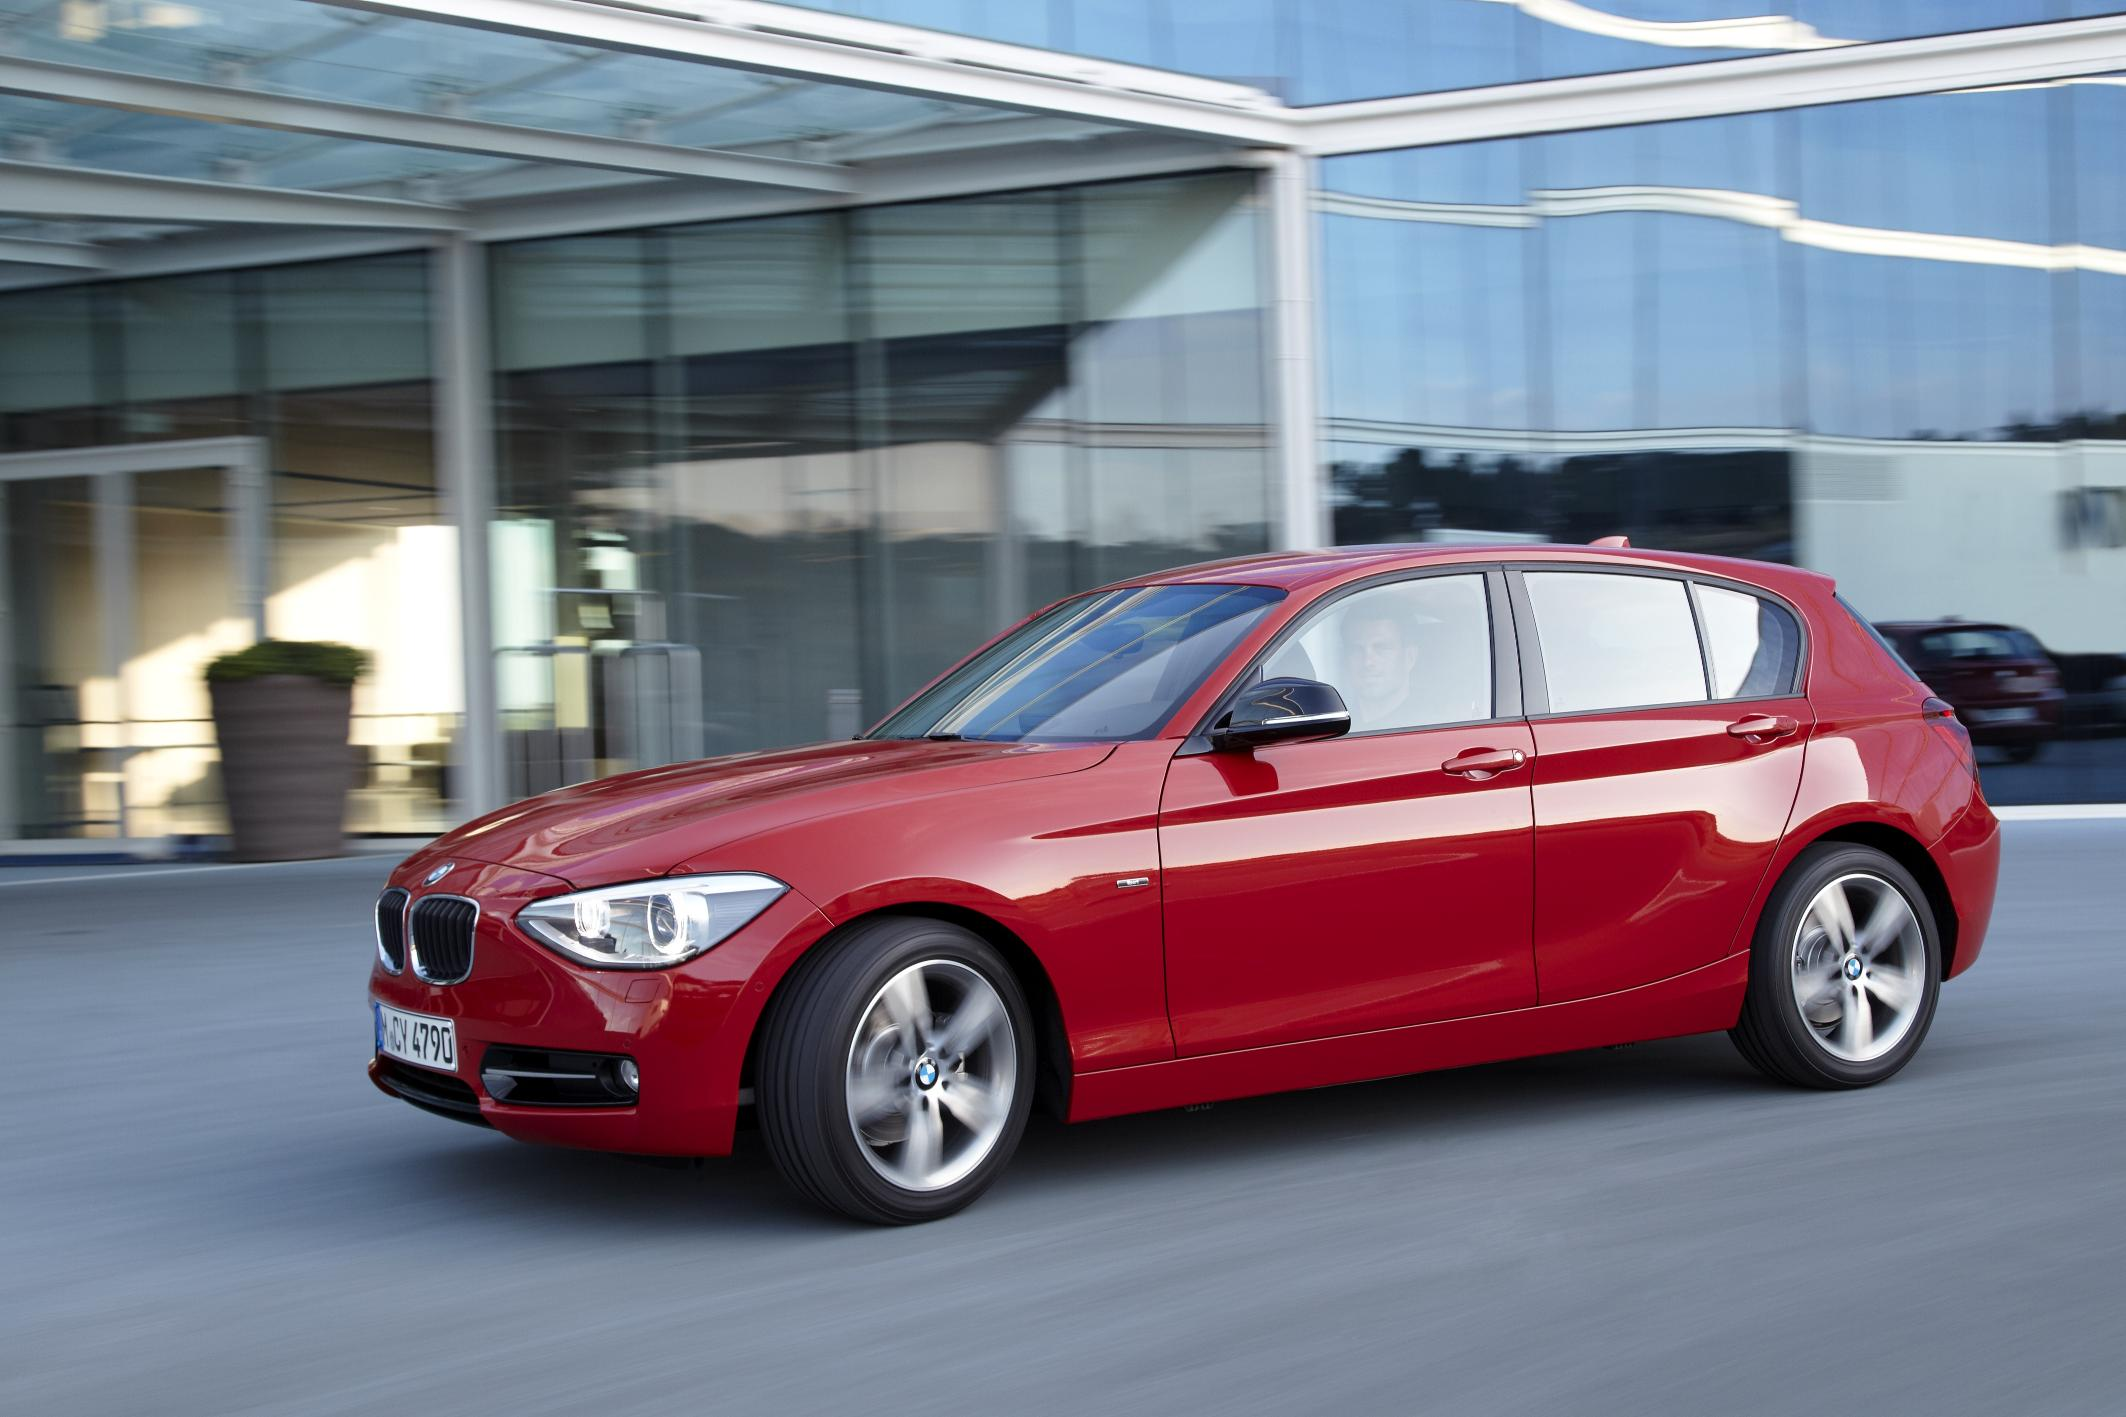 Red BMW 1 Series